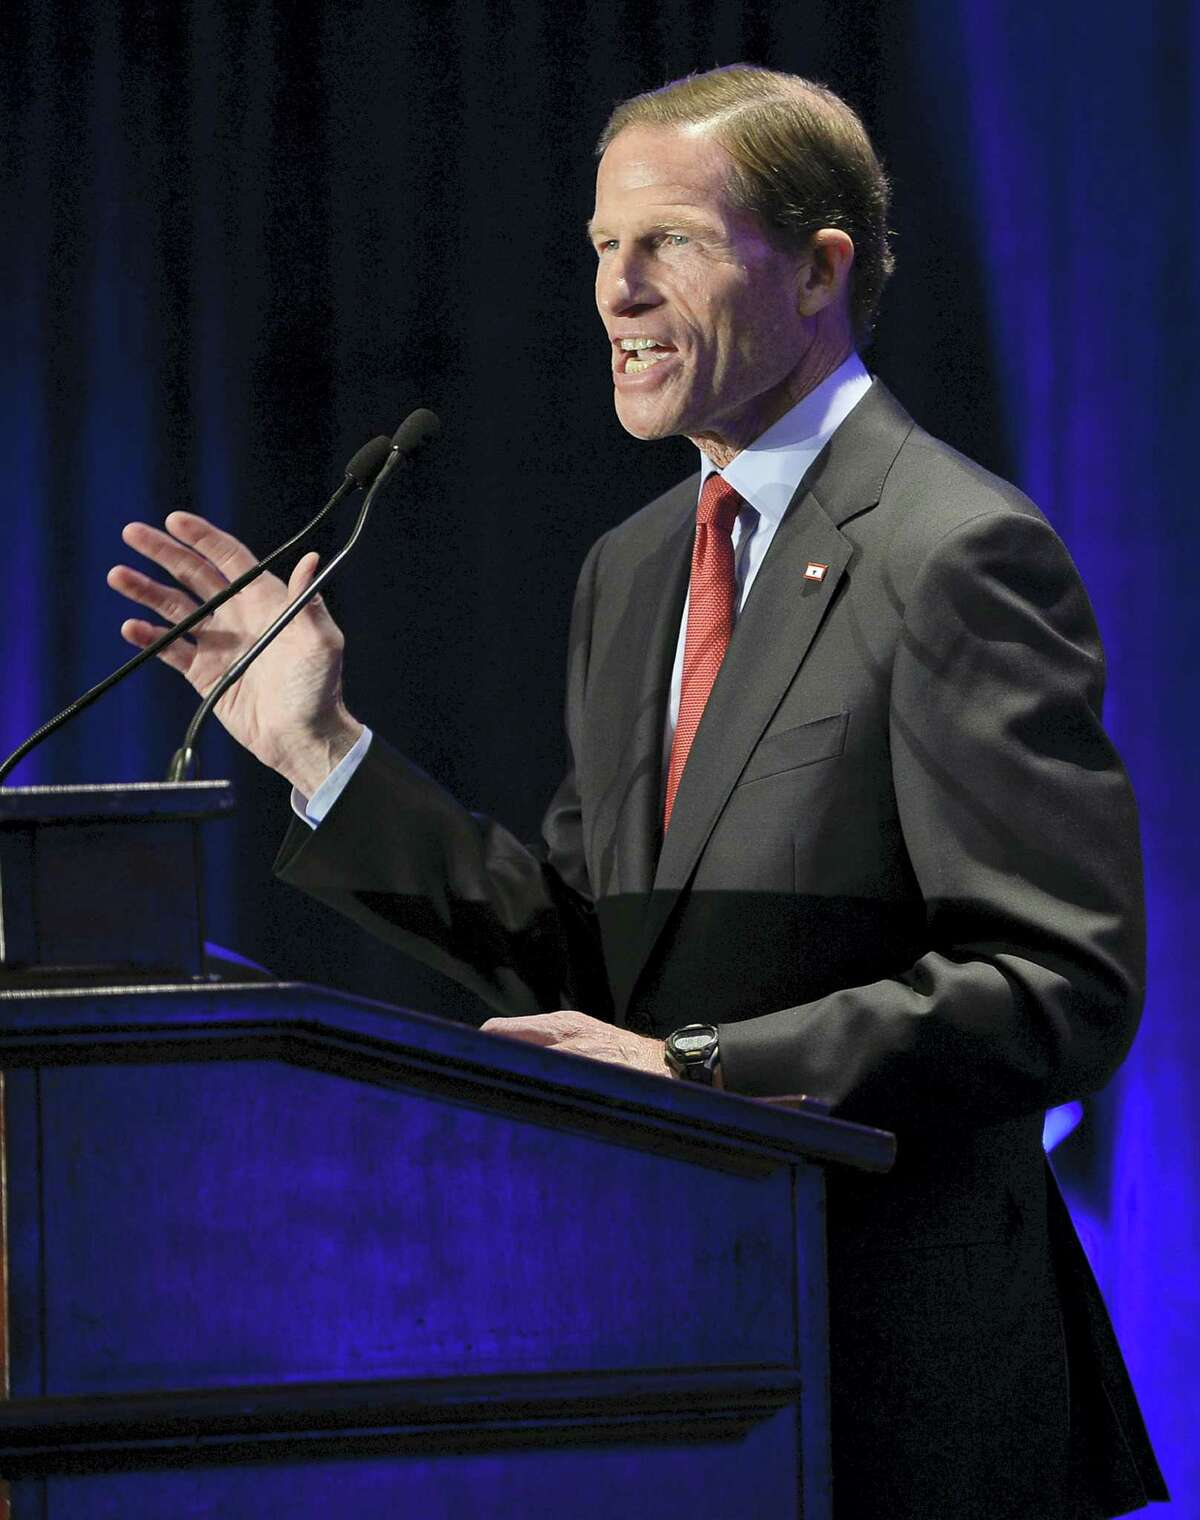 U.S. Sen. Richard Blumenthal, D-Conn., addresses supporters at an election night rally in November celebrating his victory in Hartford.